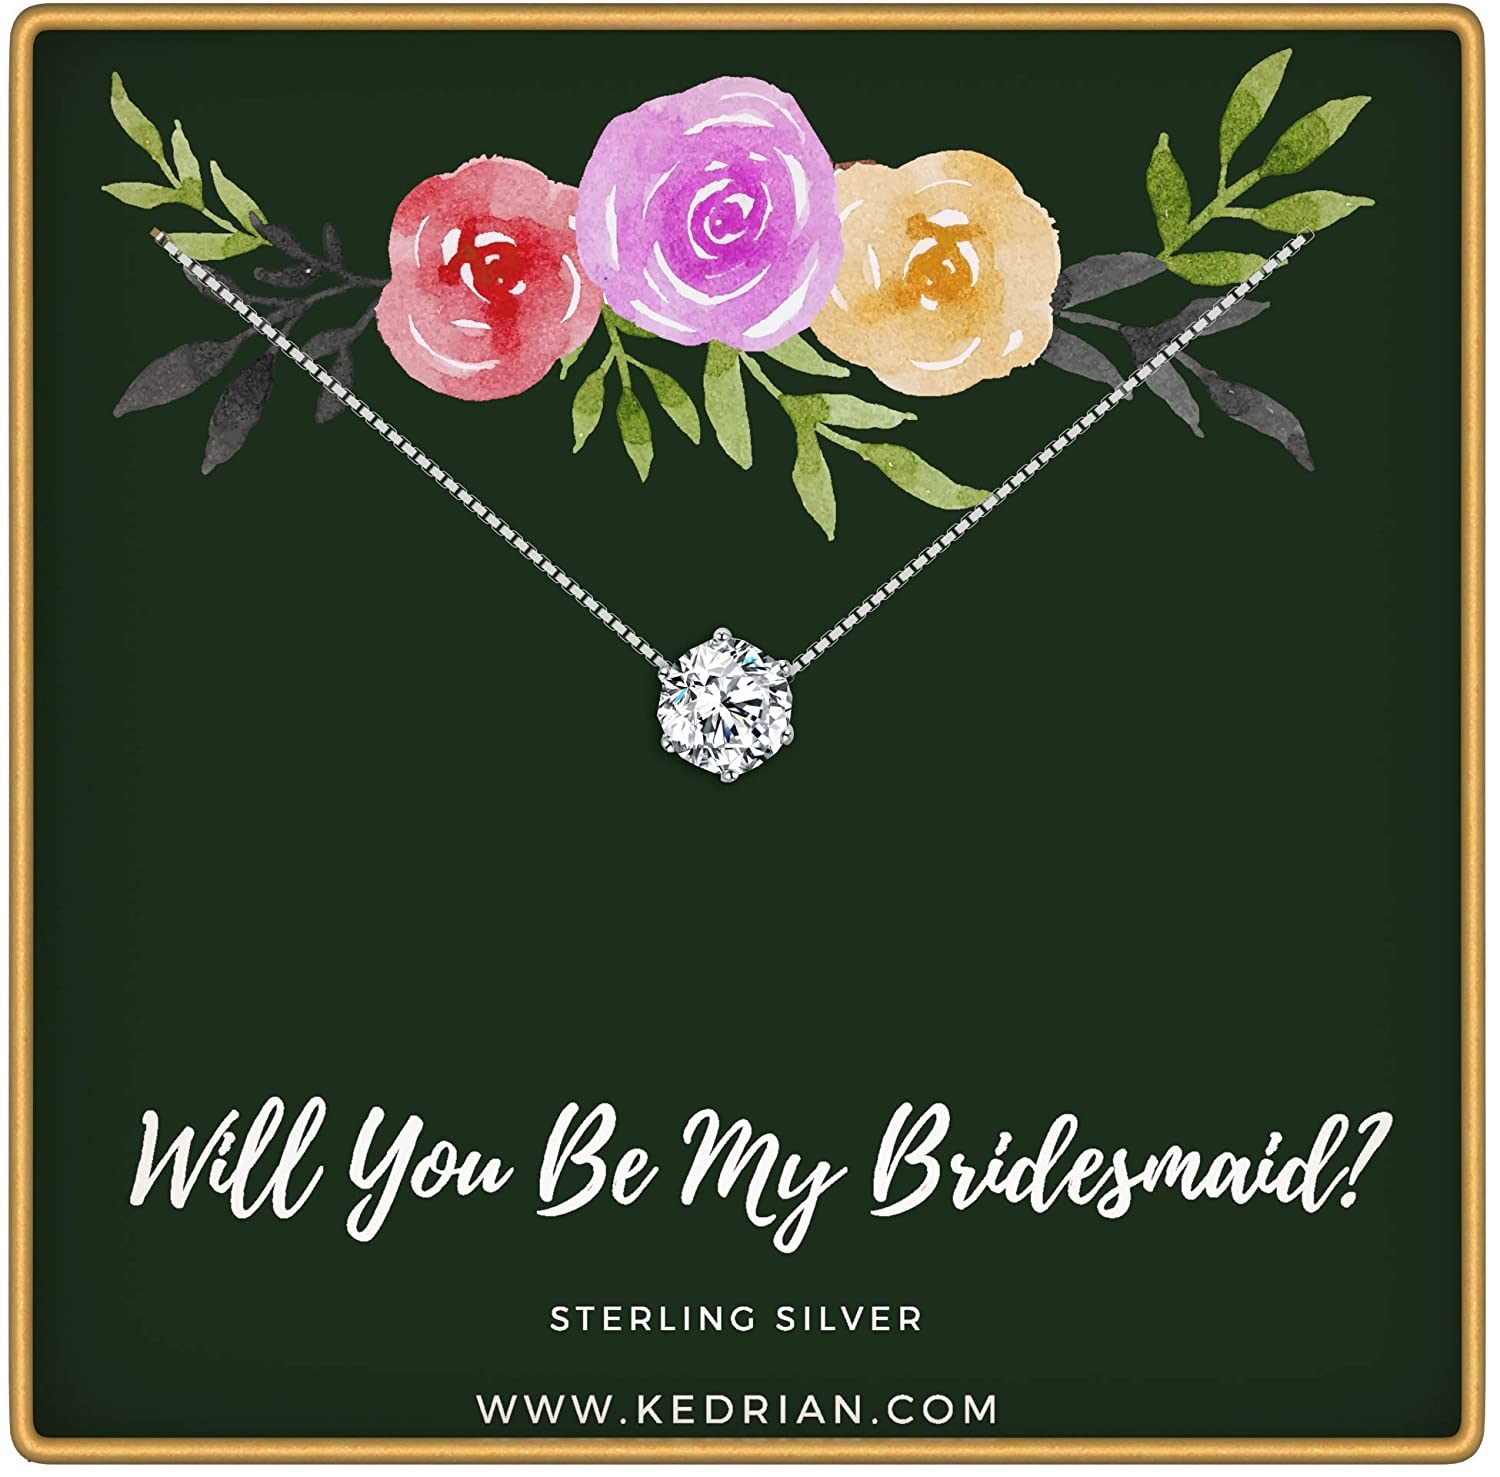 KEDRIAN Will You Be My Bridesmaid Necklace, 925 Sterling Silver, Maid of Honor Gift with Will You Be My Bridesmaid Card, Bridesmaid Necklace